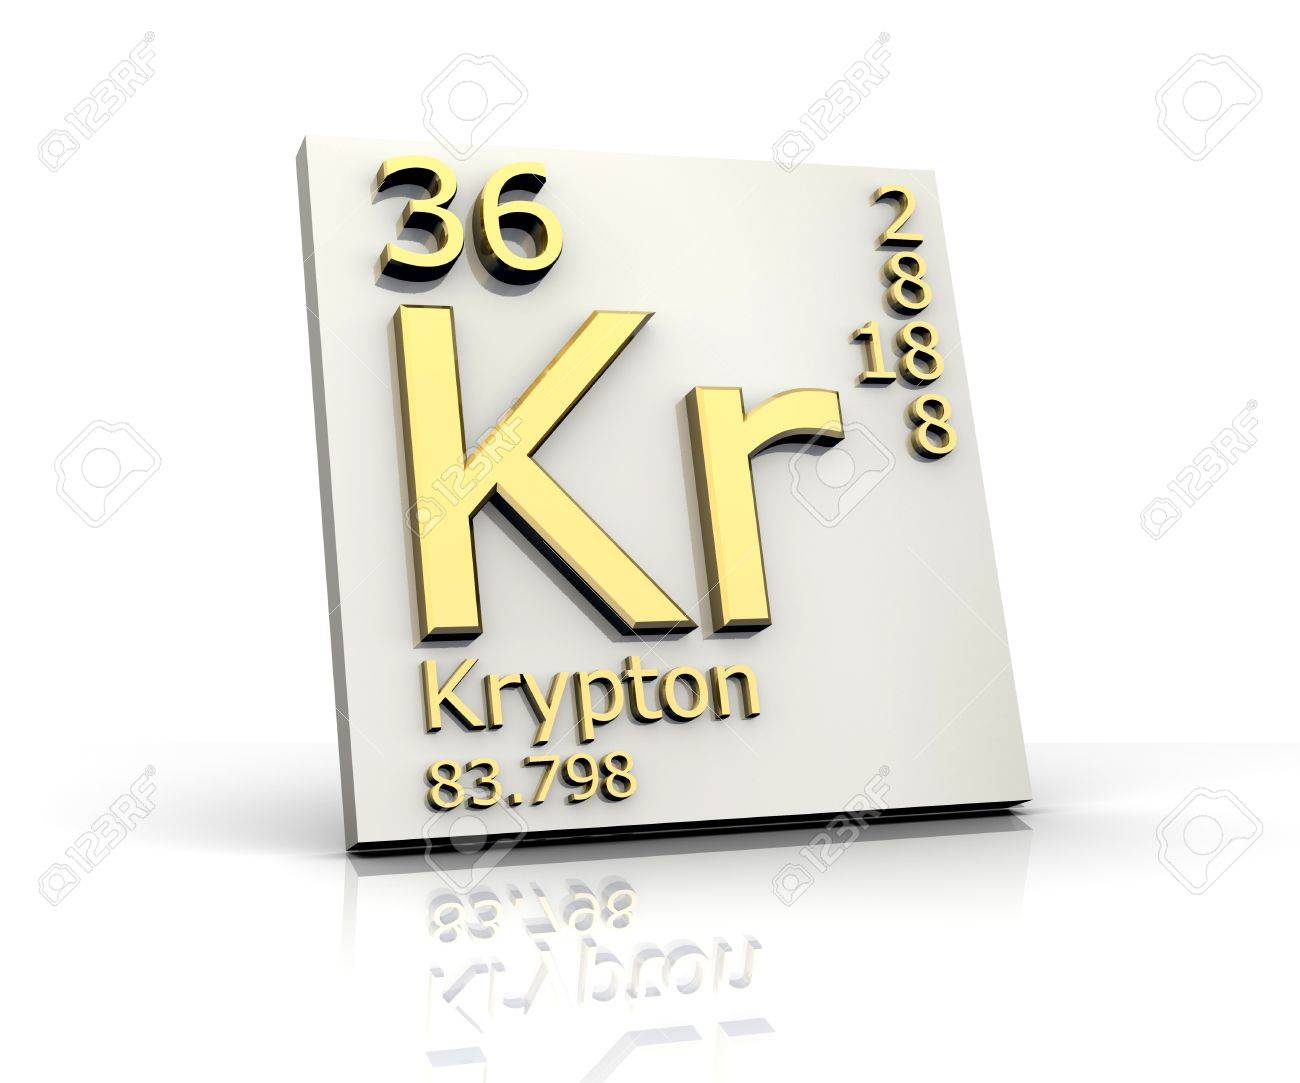 Krypton form periodic table of elements stock photo picture and krypton form periodic table of elements stock photo 4315574 urtaz Choice Image